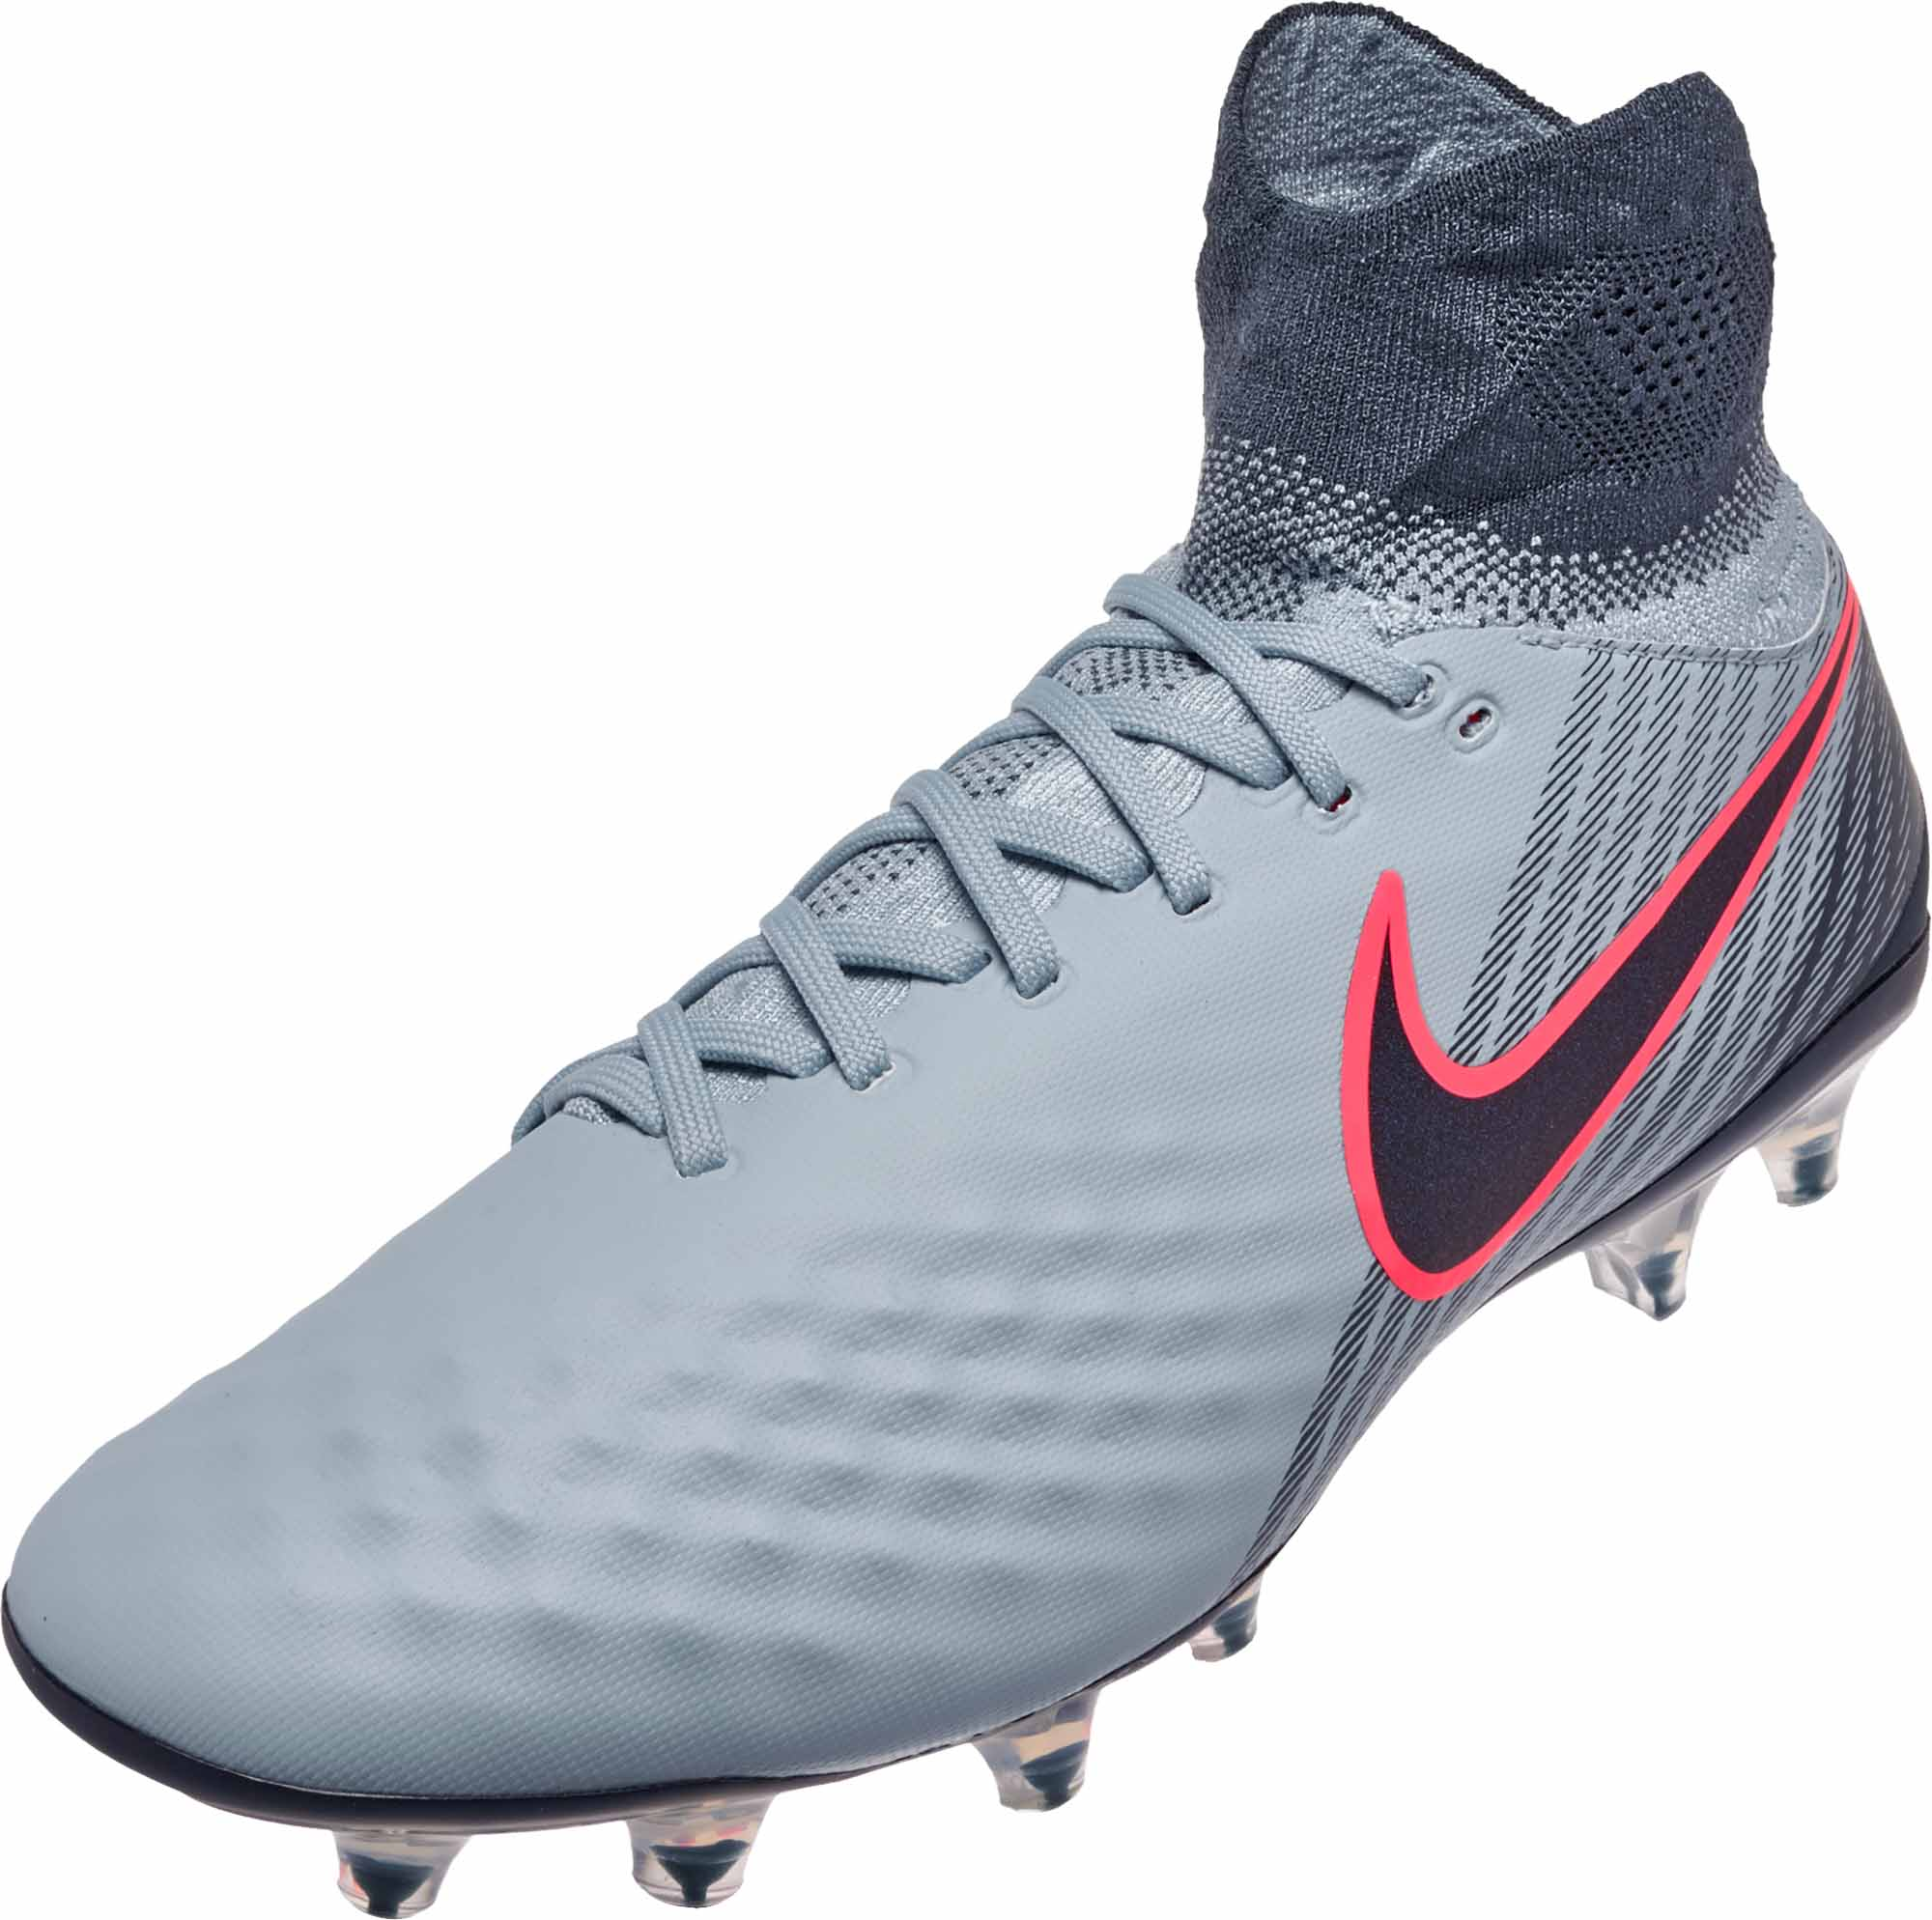 Nike Magista Orden II FG Soccer Cleats - Light Armory Blue ...